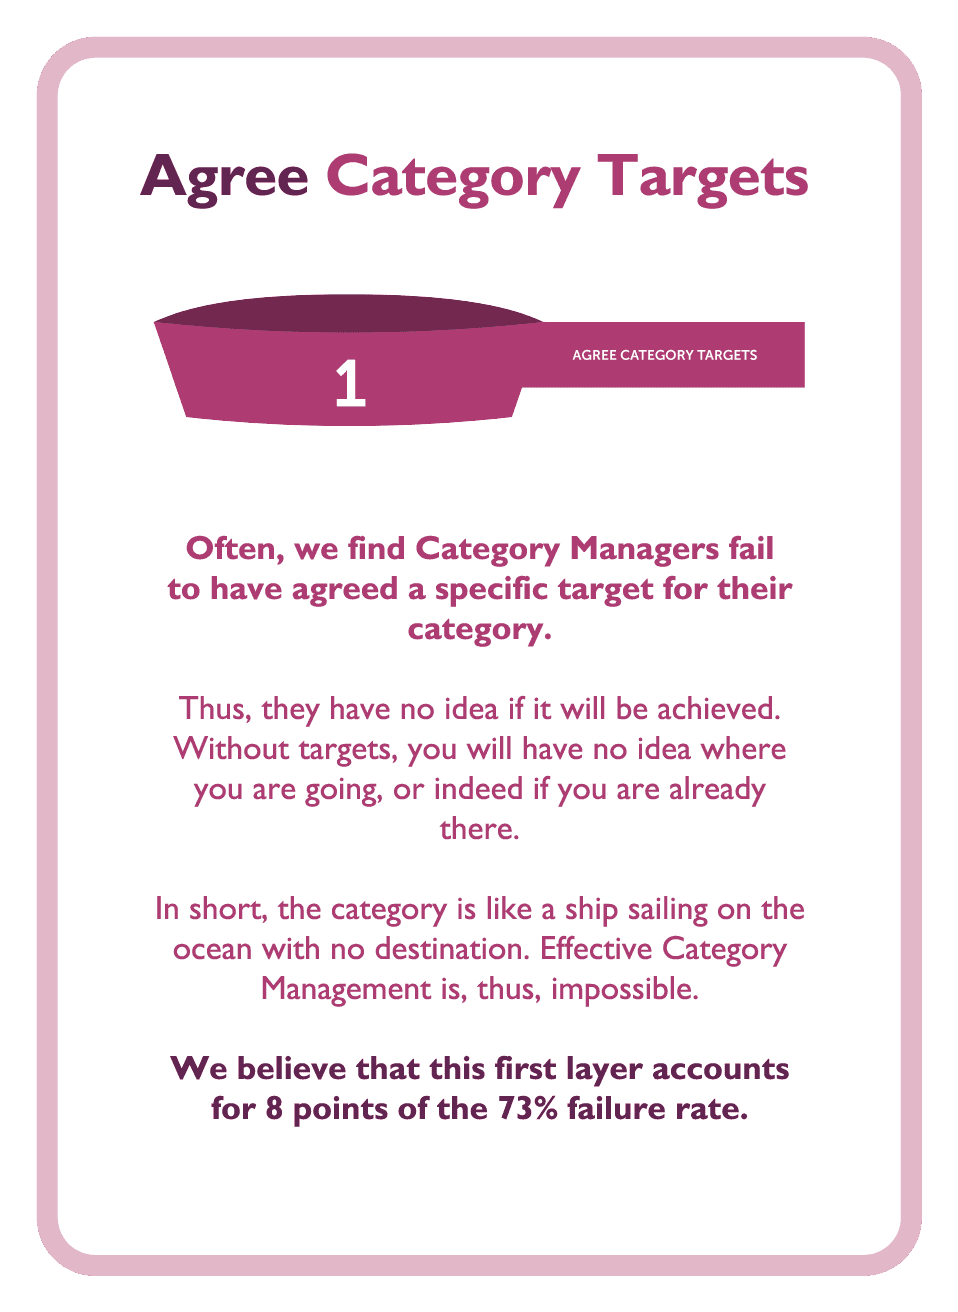 Category management coaching card titled Agree Category Targets